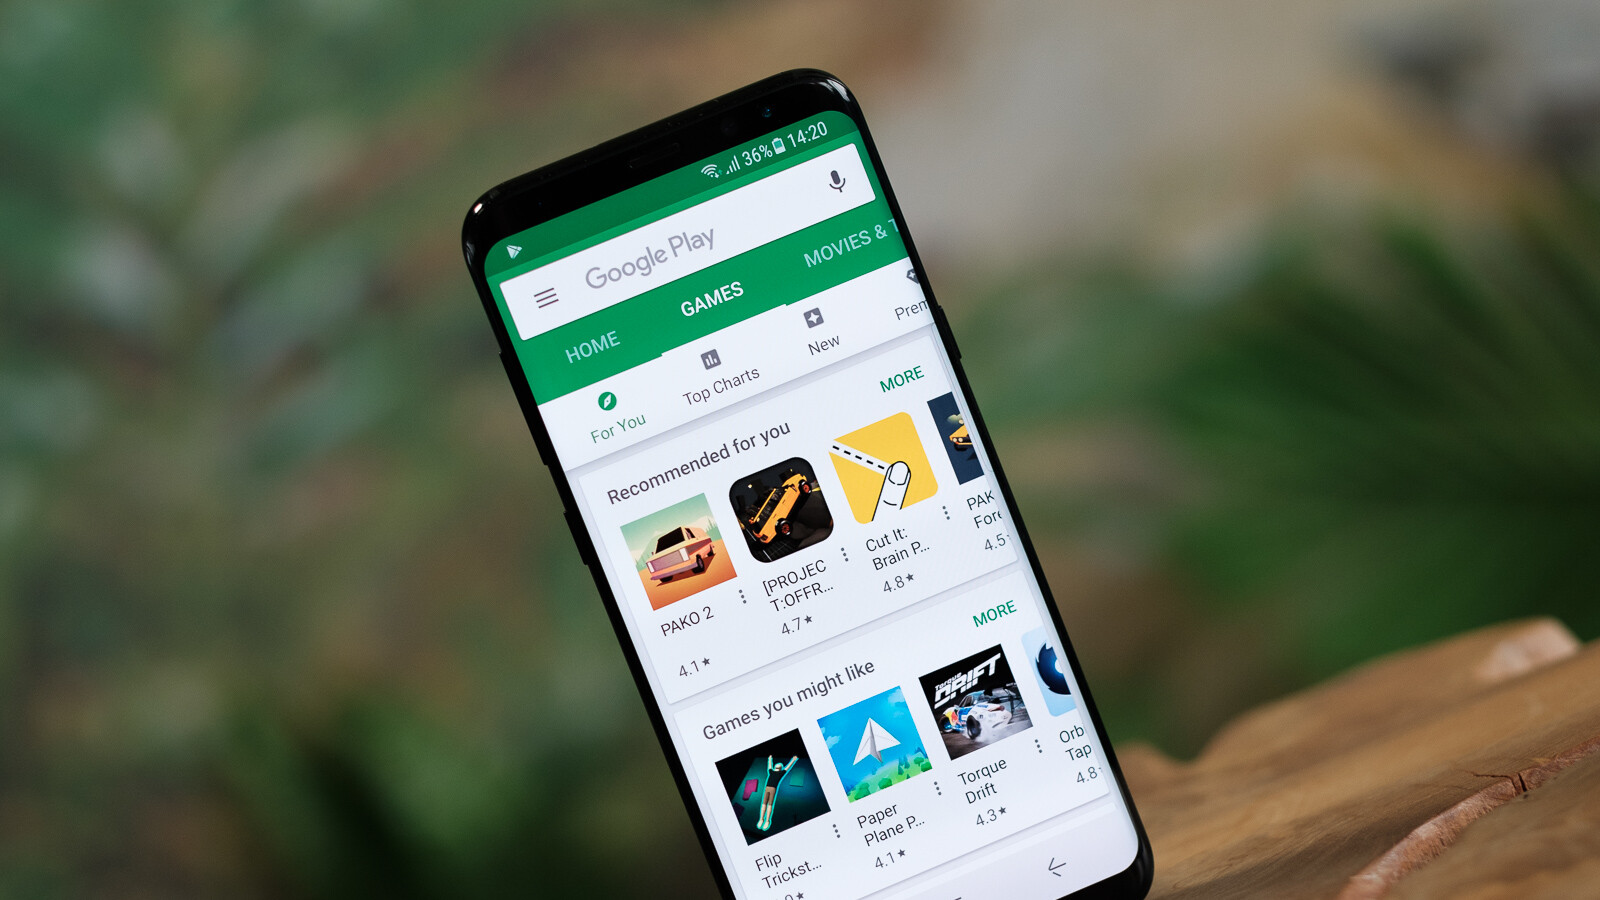 Google removed these apps from the Play Store, now you should delete them from your phone - PhoneArena